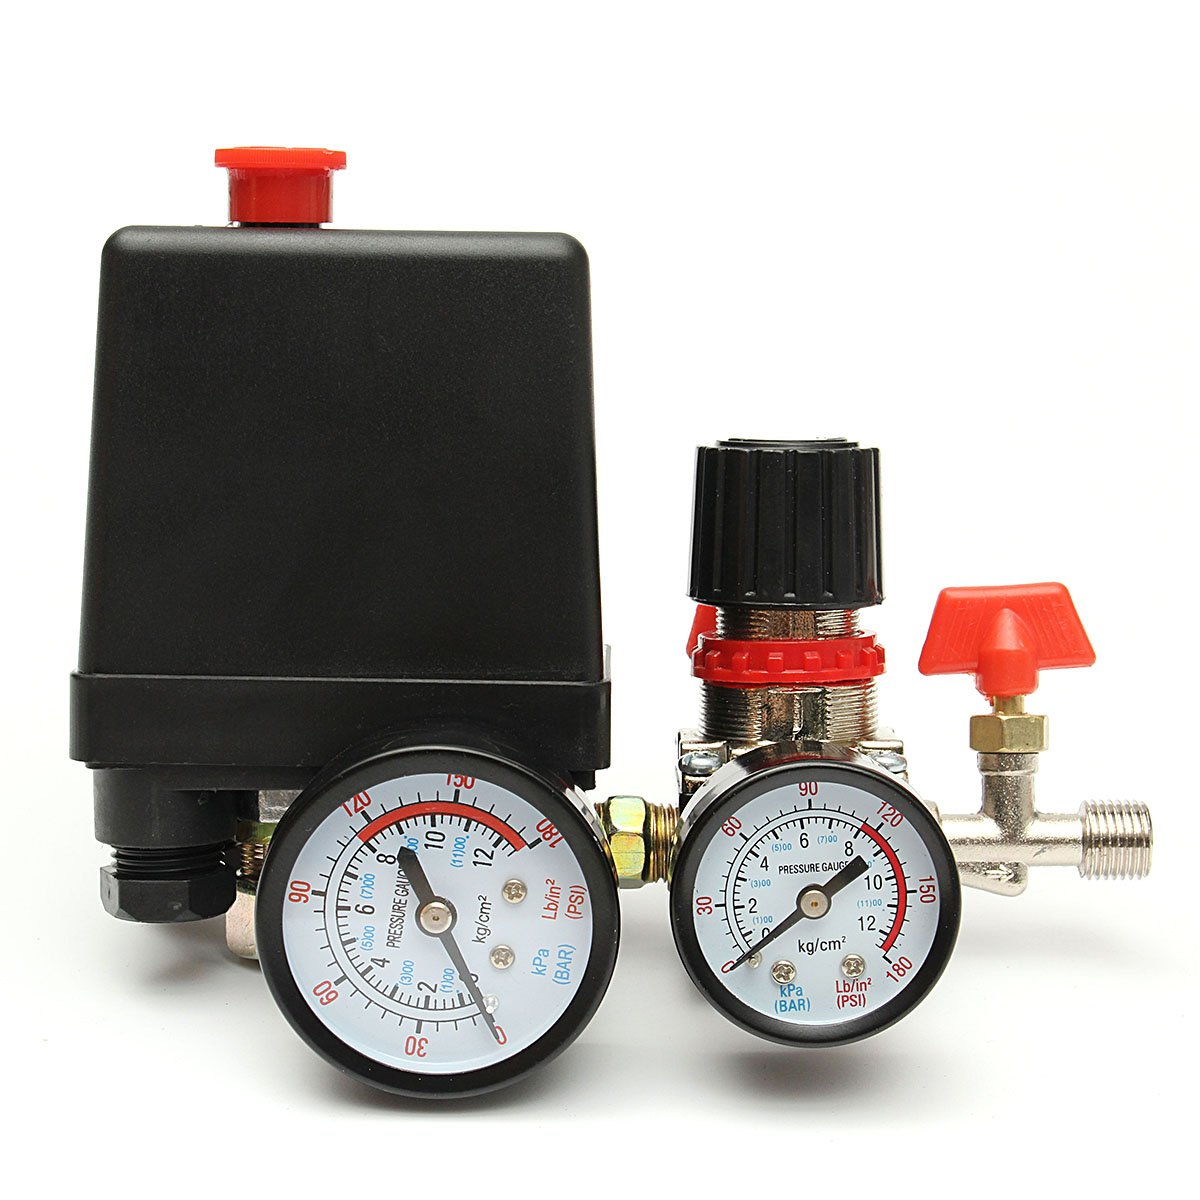 MASUNN 125PSI Air Compressor Pressure Valve Switch Control Manifold Regulator Gauges